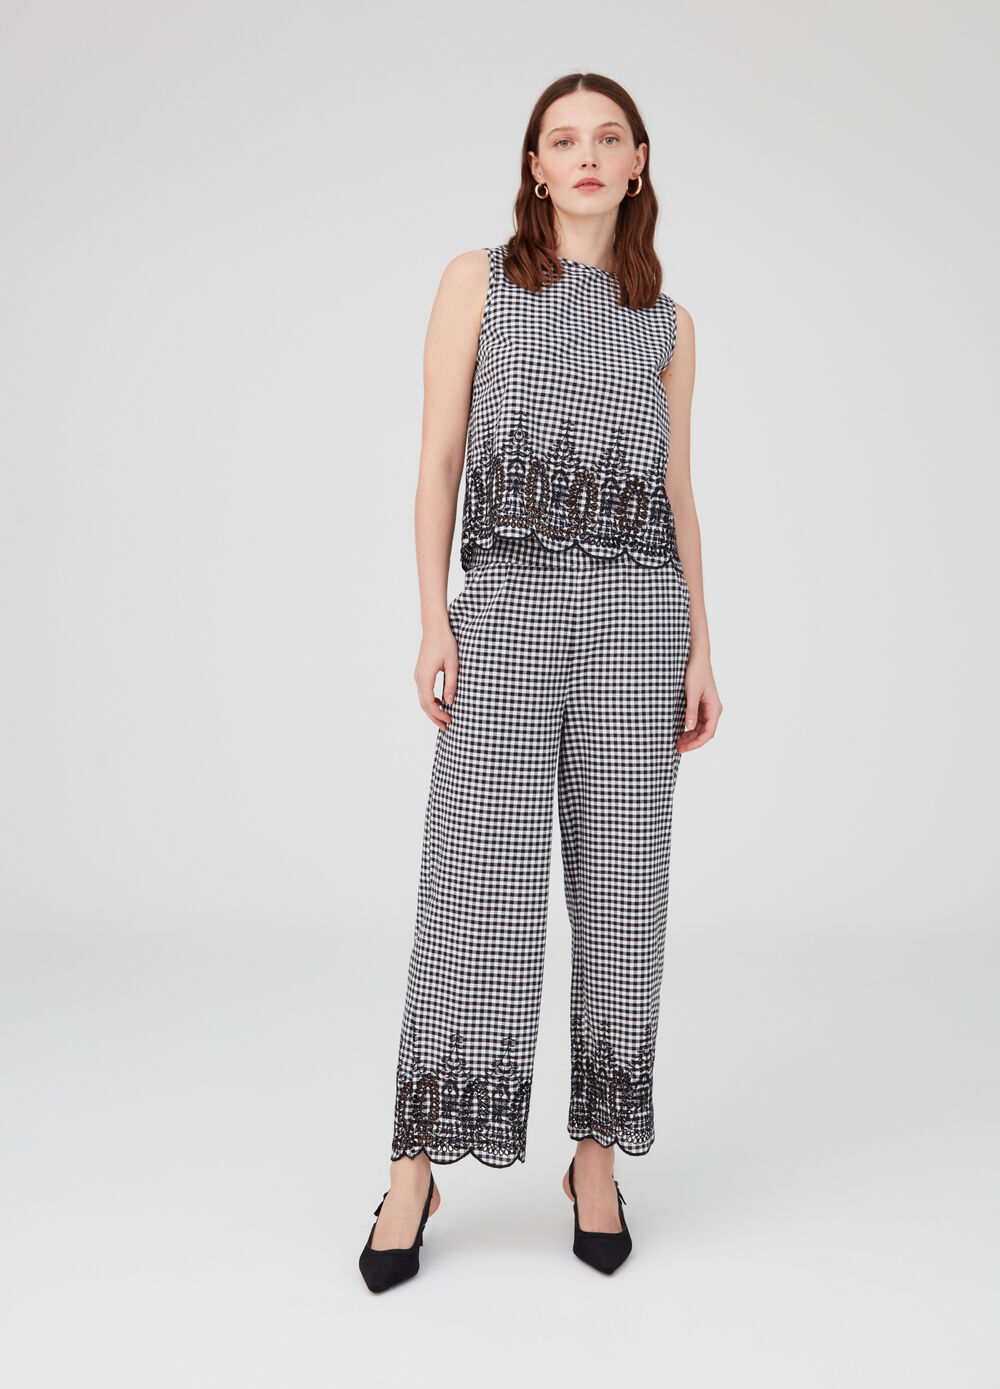 Culotte trousers with pockets and embroidery